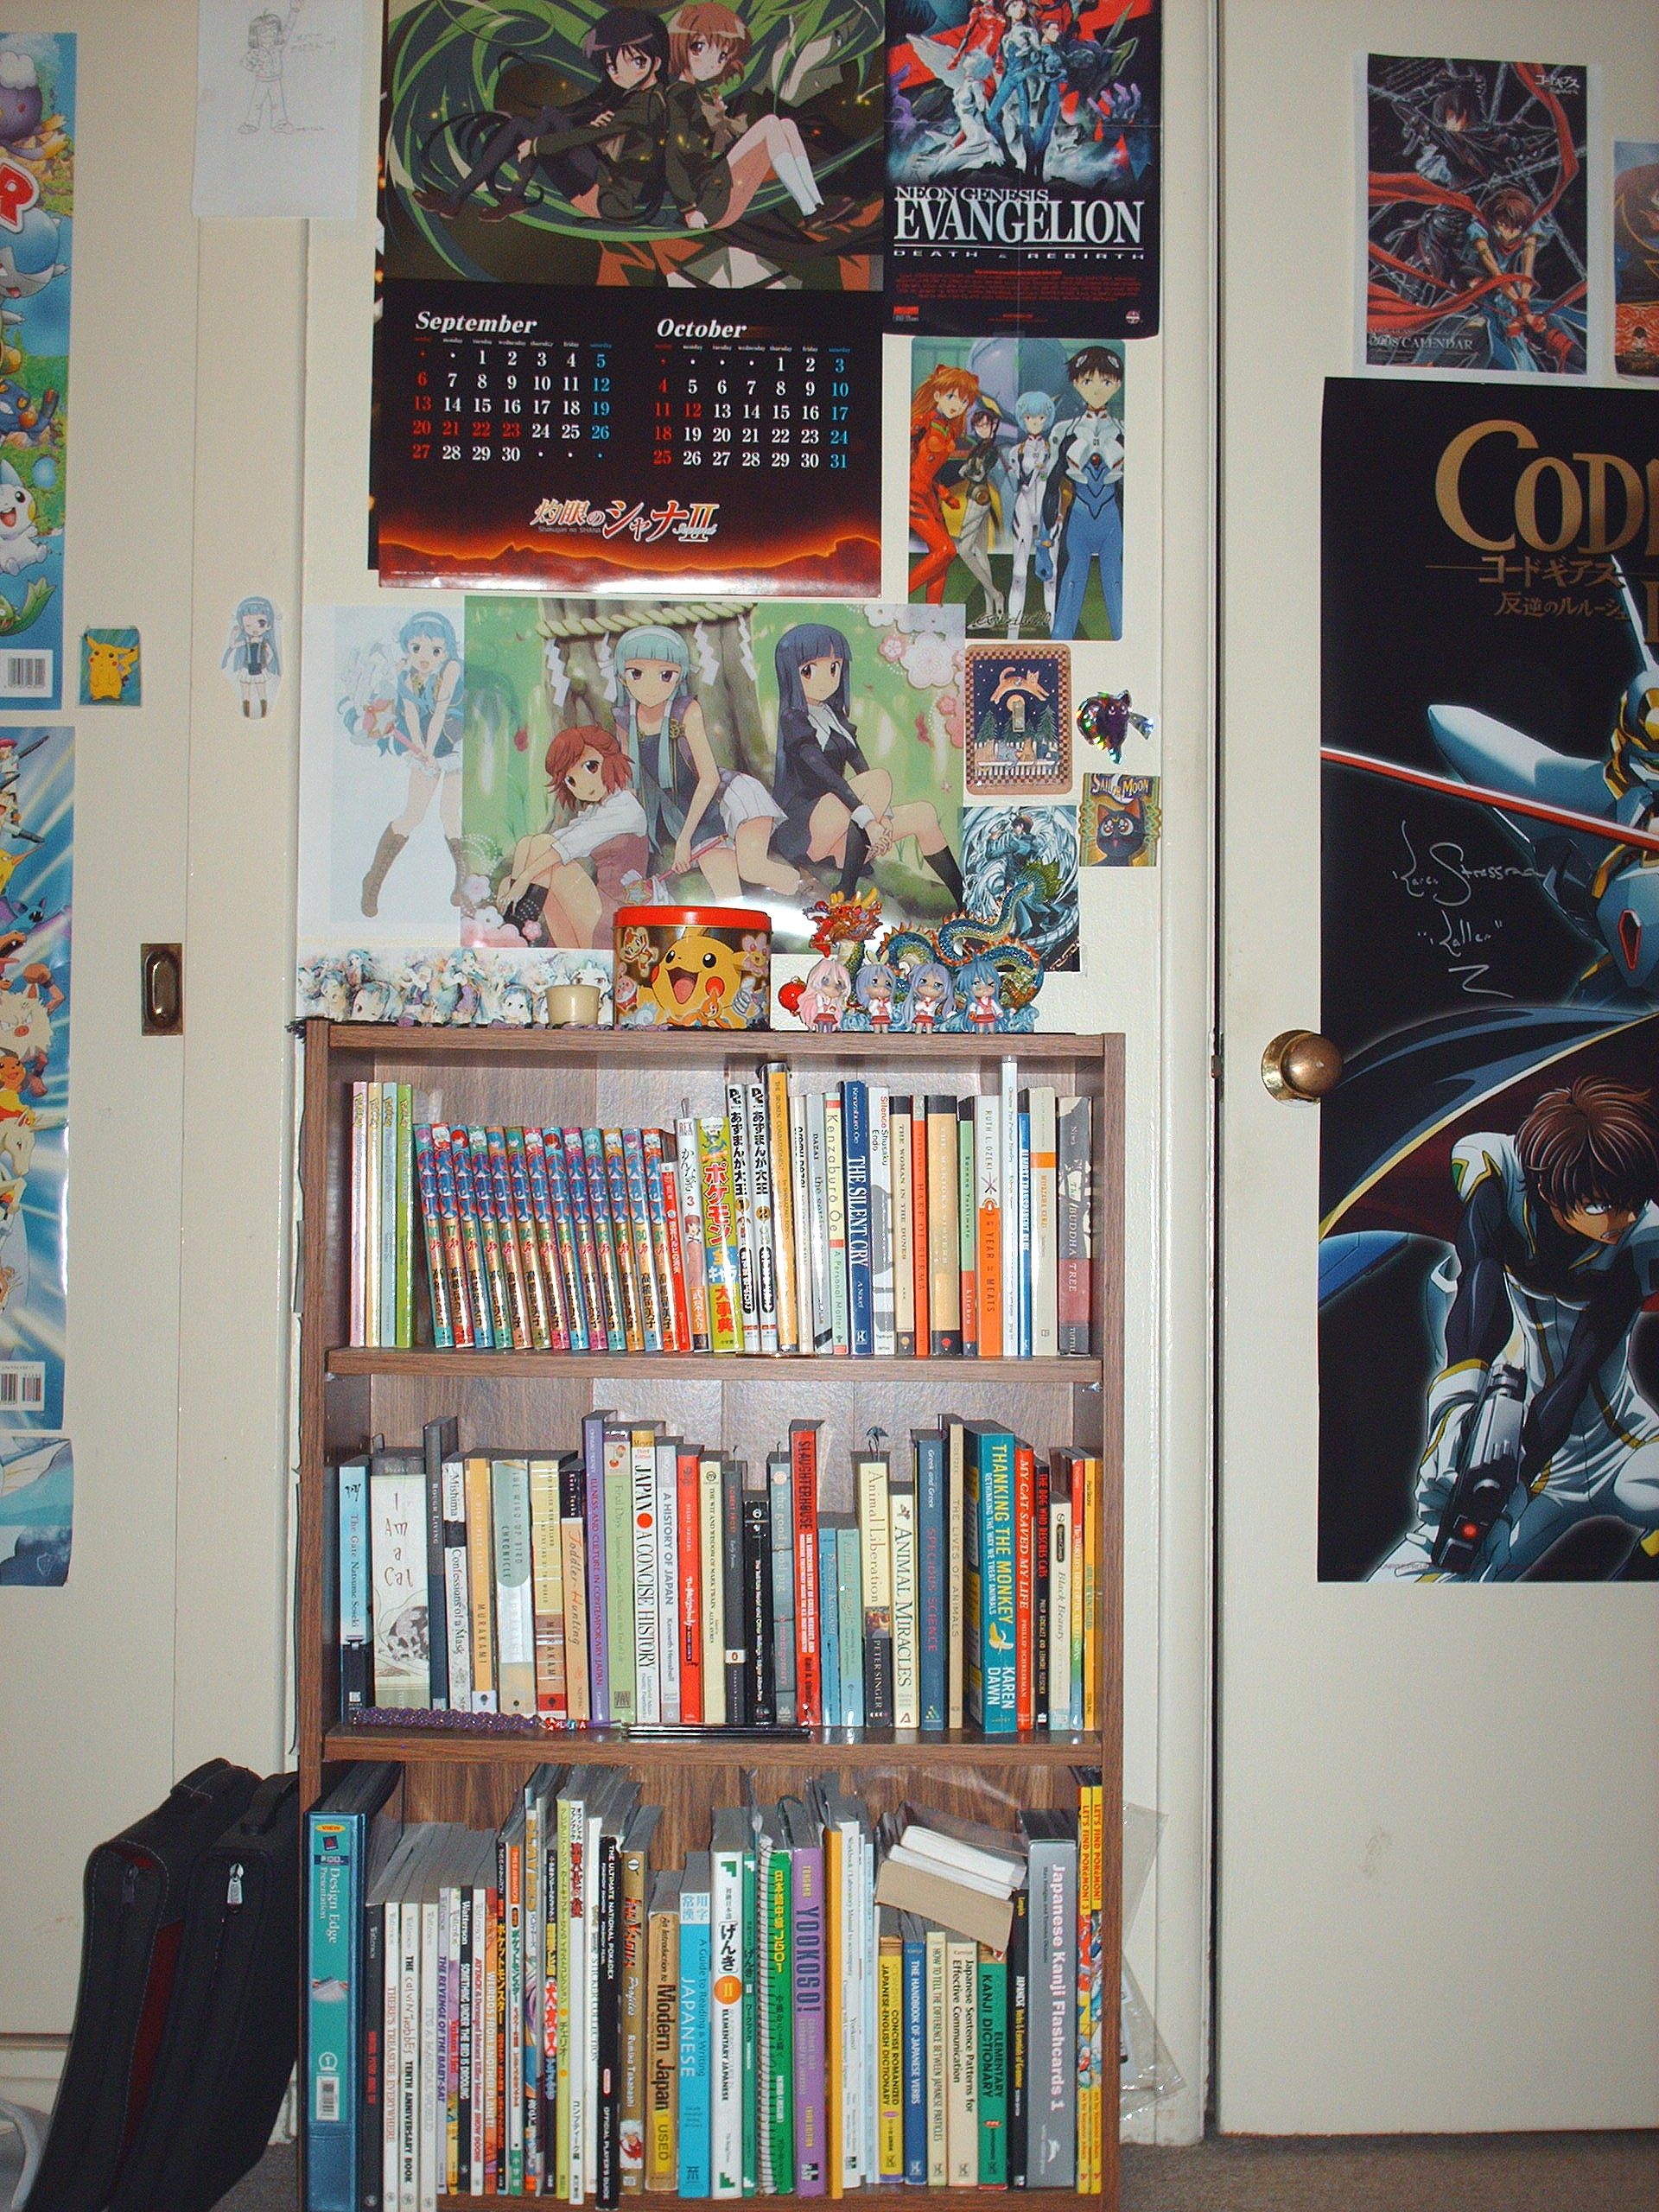 My Bookshelf Each Year I Get A Different Anime Import Calender And This Years Is Shakugan No Shana Which You Can See Hanging Above